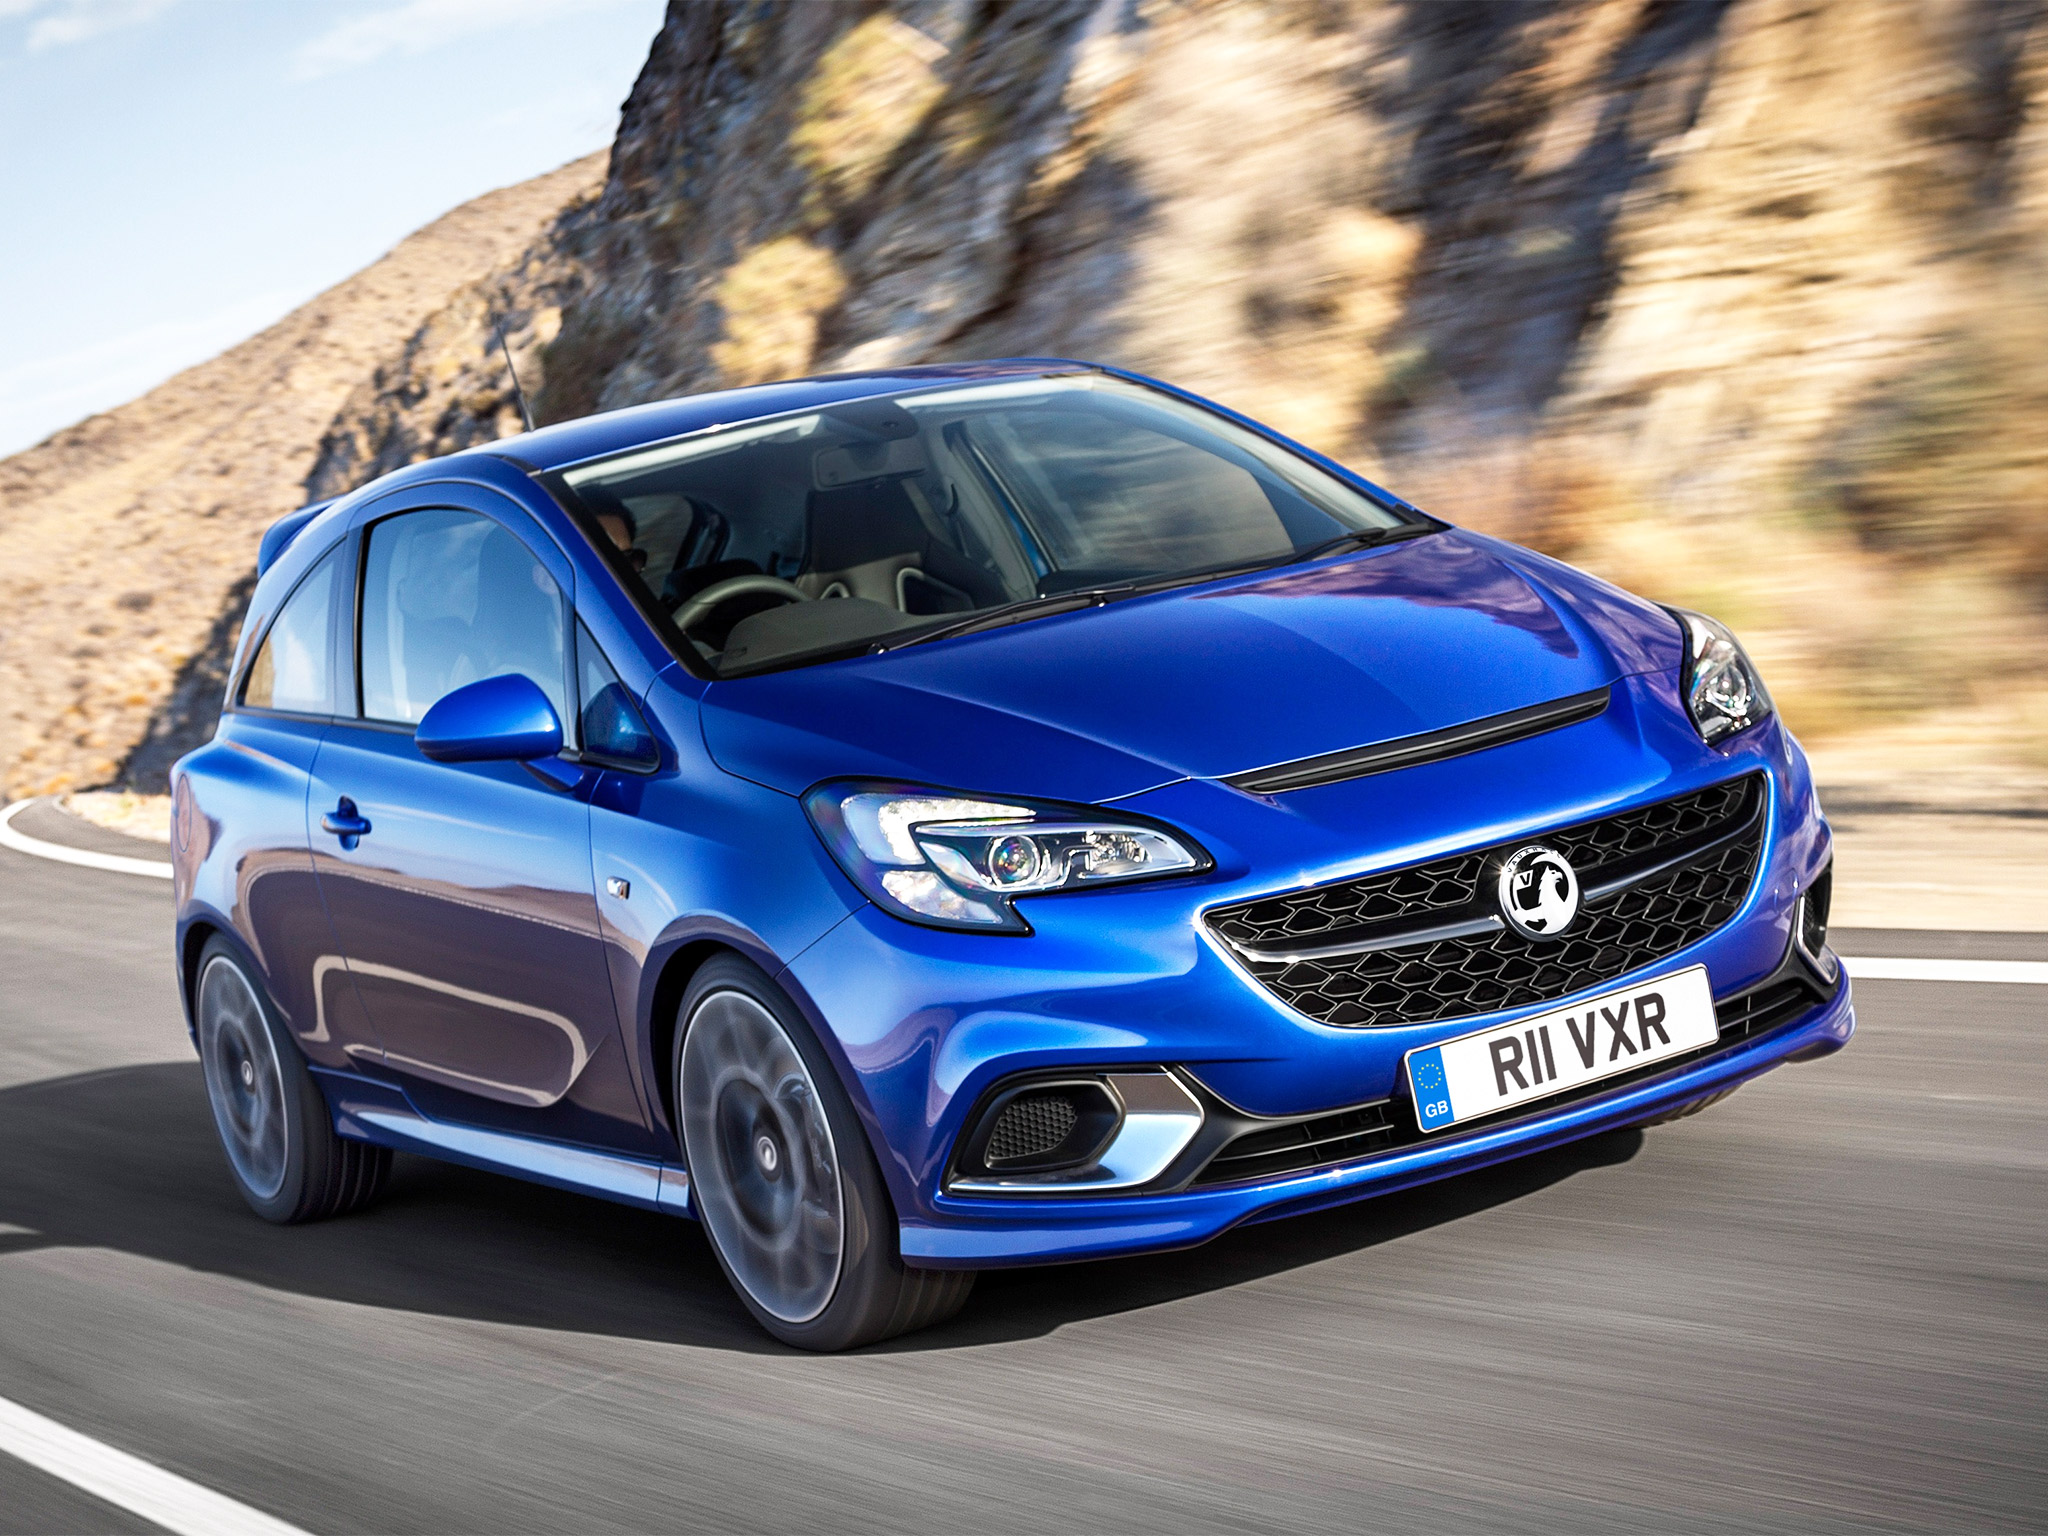 Vauxhall Corsa VXR in electric blue